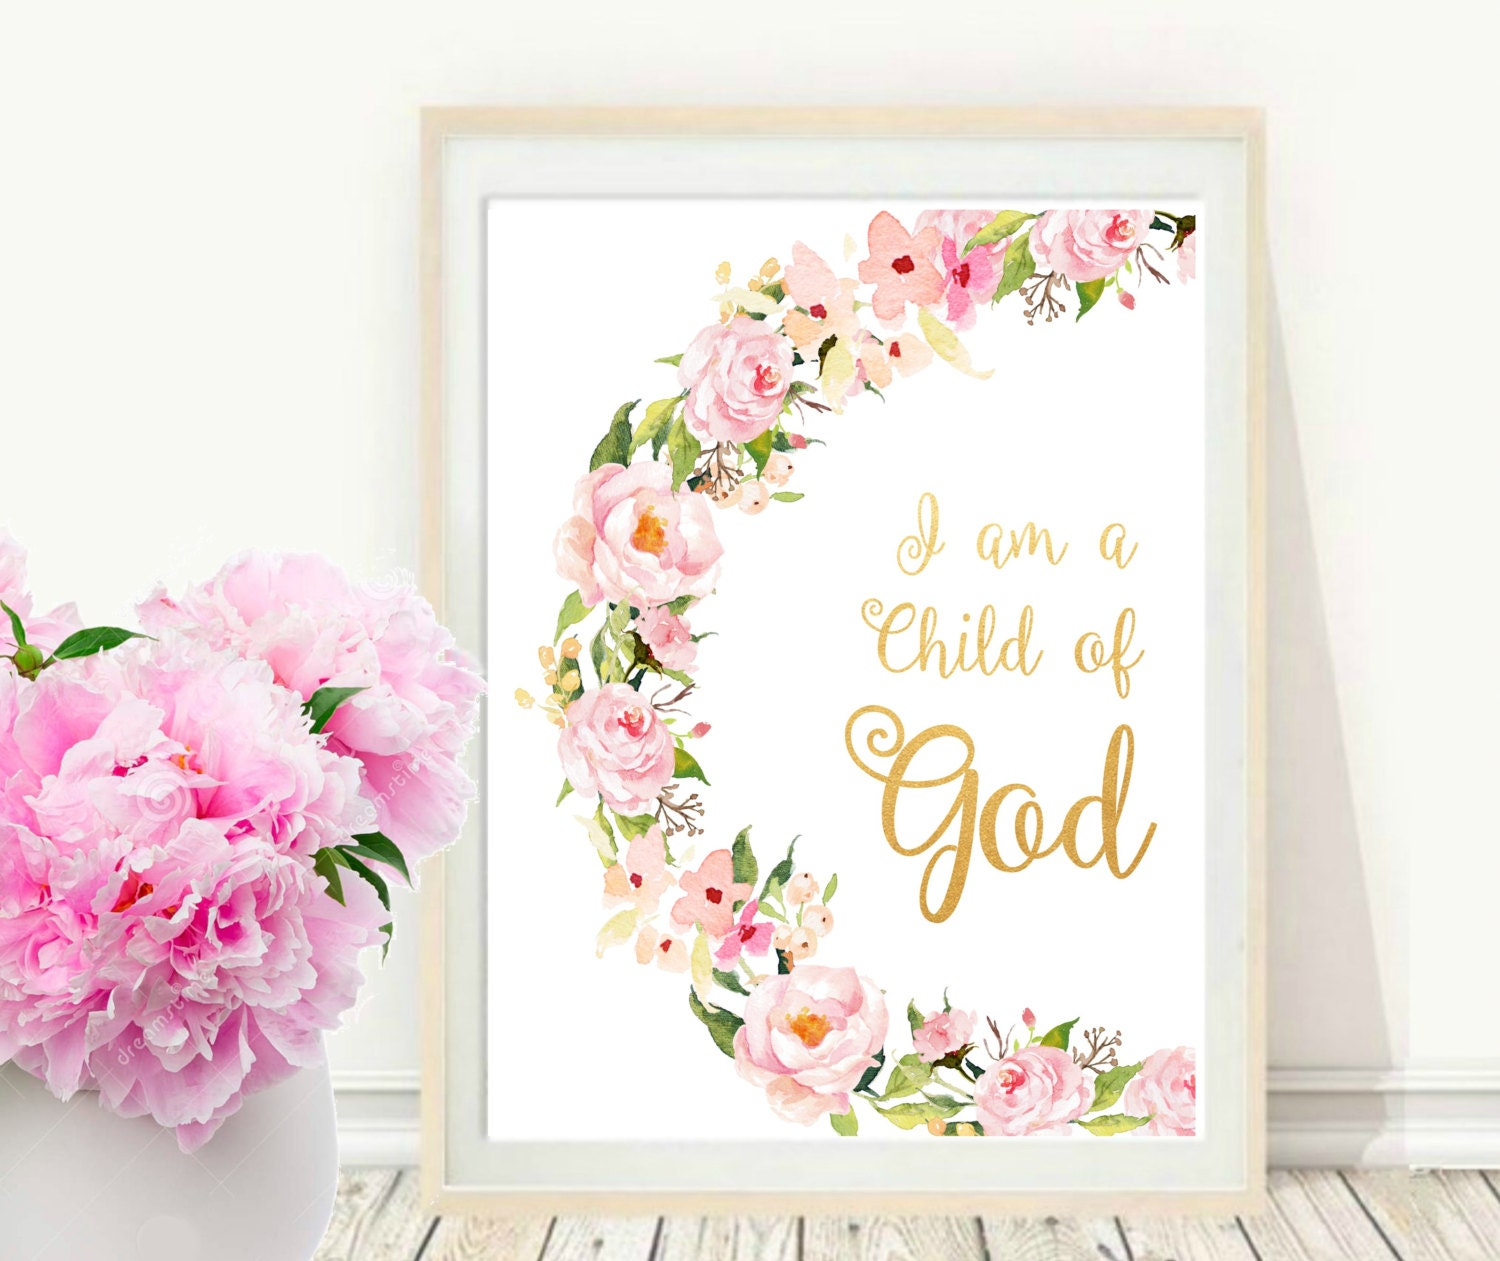 image relating to I Am a Child of God Printable named I Am A kid Of God, Printable Bible Verse, Inspirational Print, Nursery Wall Artwork, Floral Scripture, instantaneous Obtain, Wall Artwork